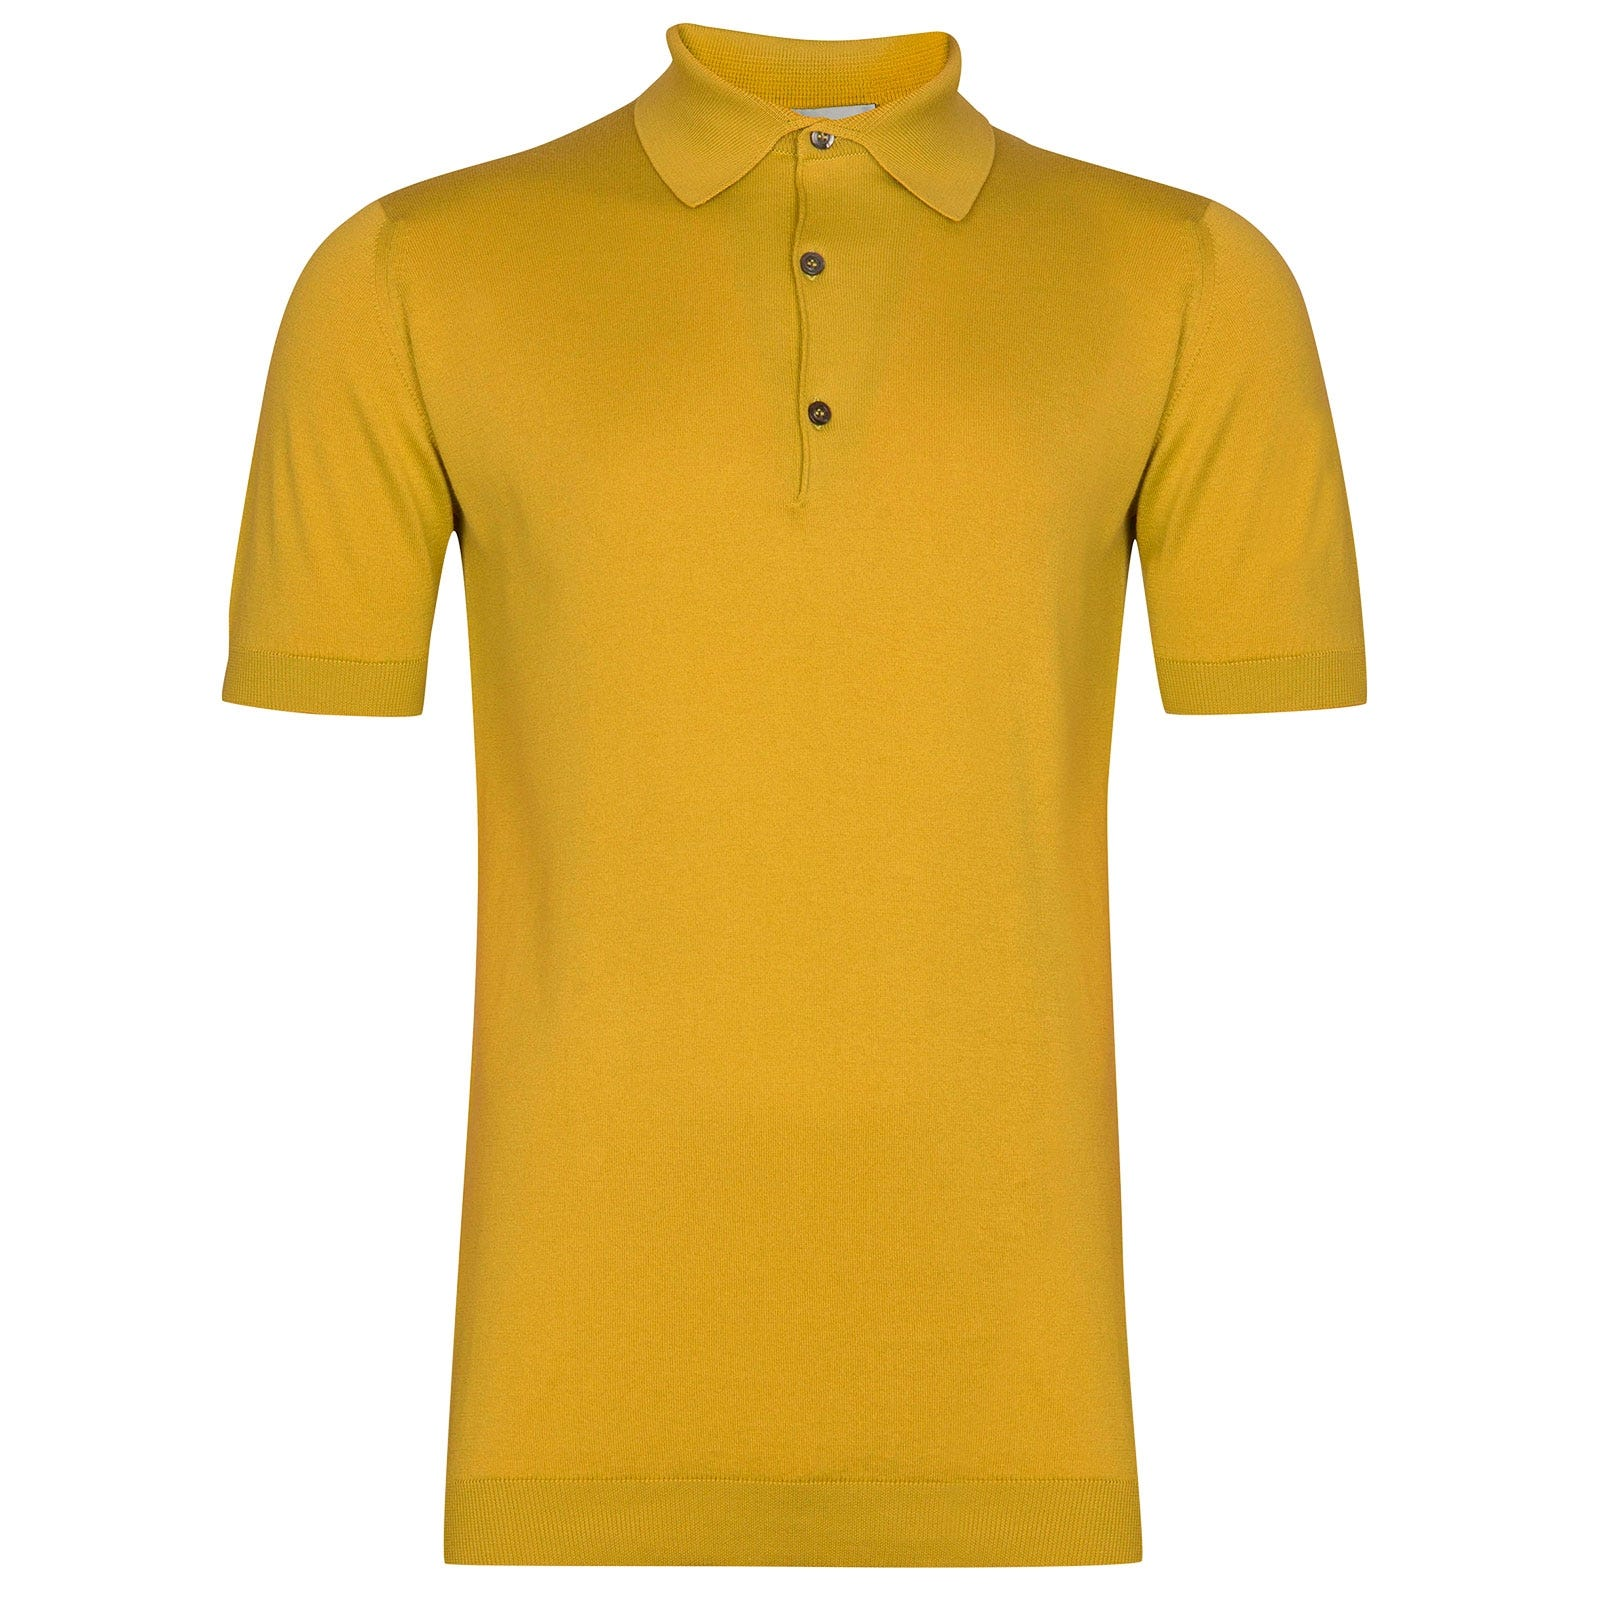 John Smedley Adrian Sea Island Cotton Shirt in Tailors Yellow-M